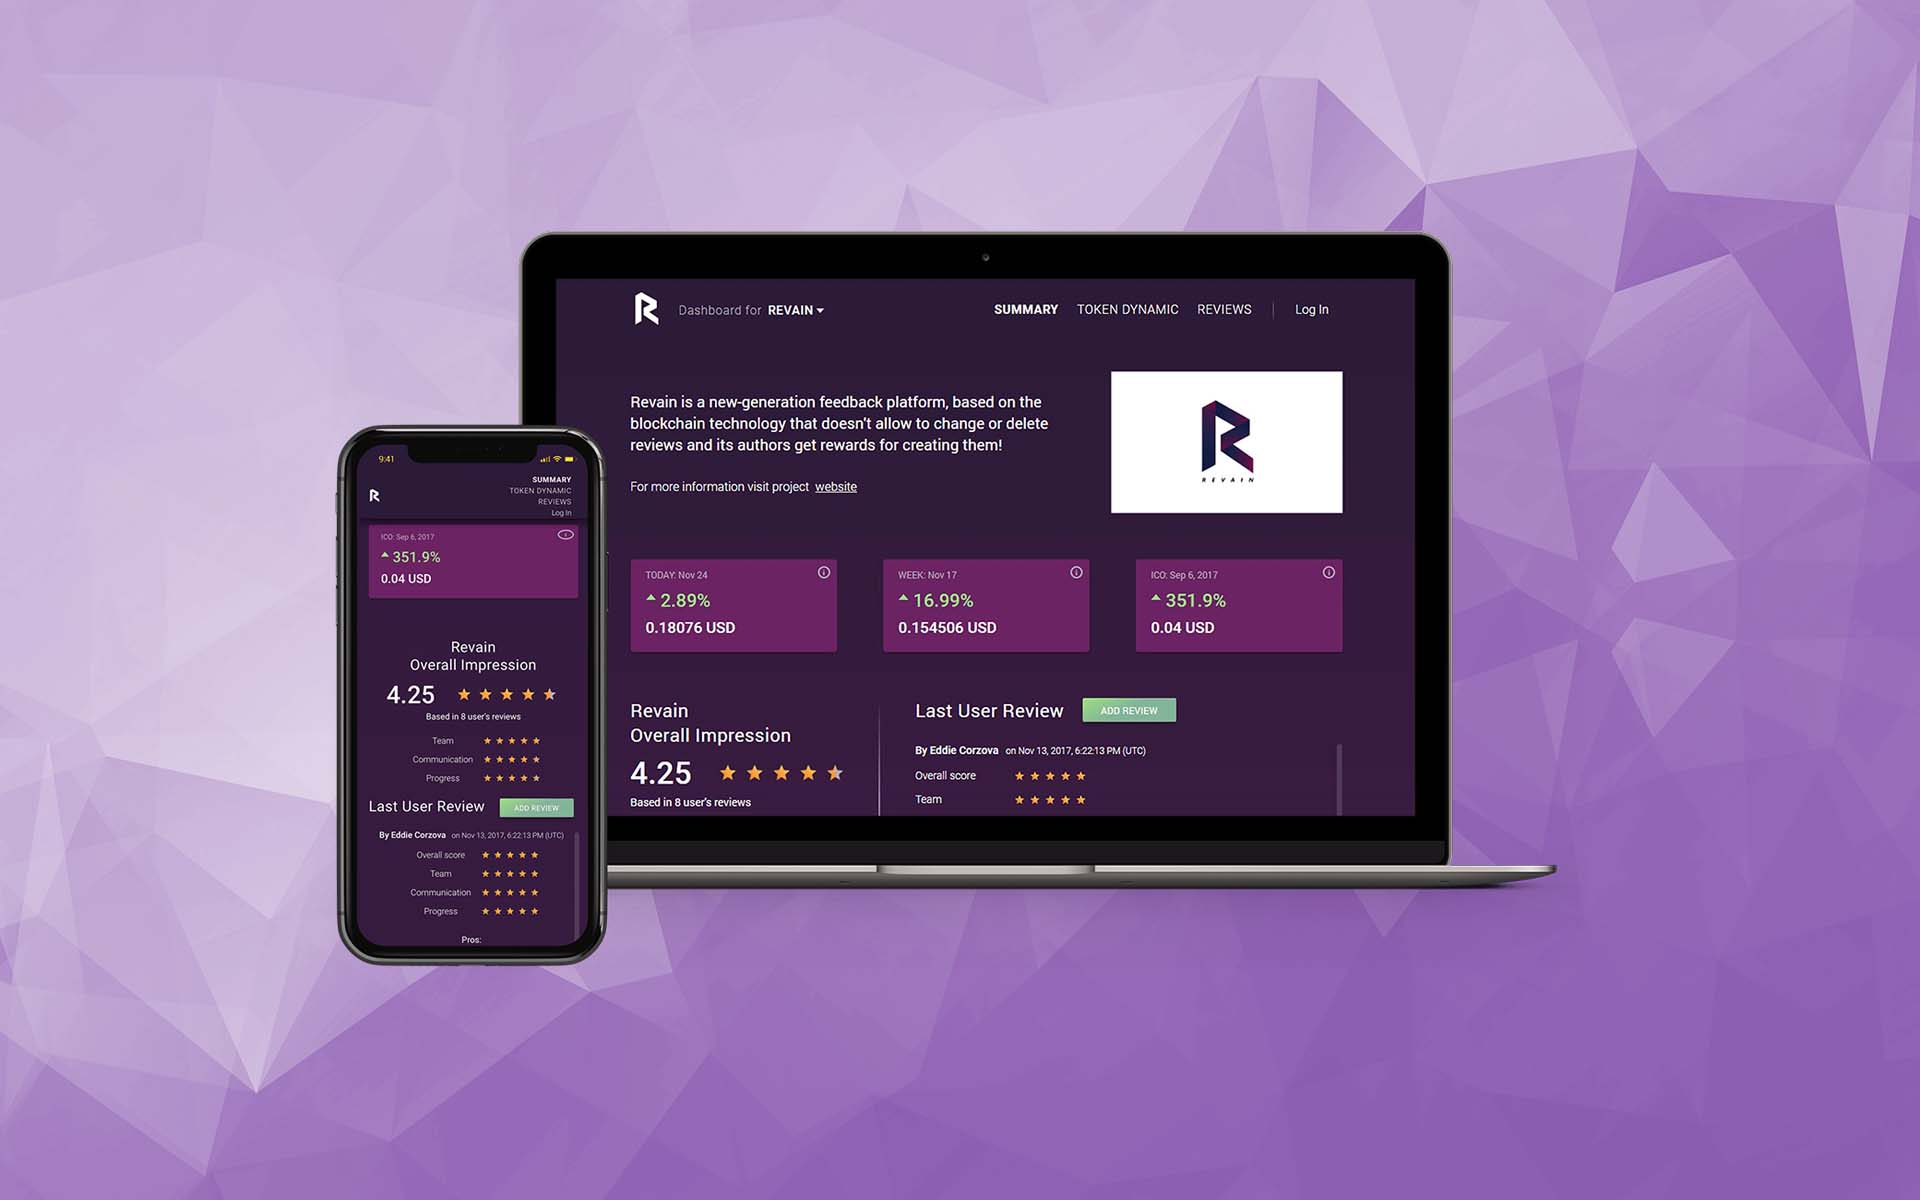 Revain Offers Honest Online Reviews Courtesy of the Blockchain